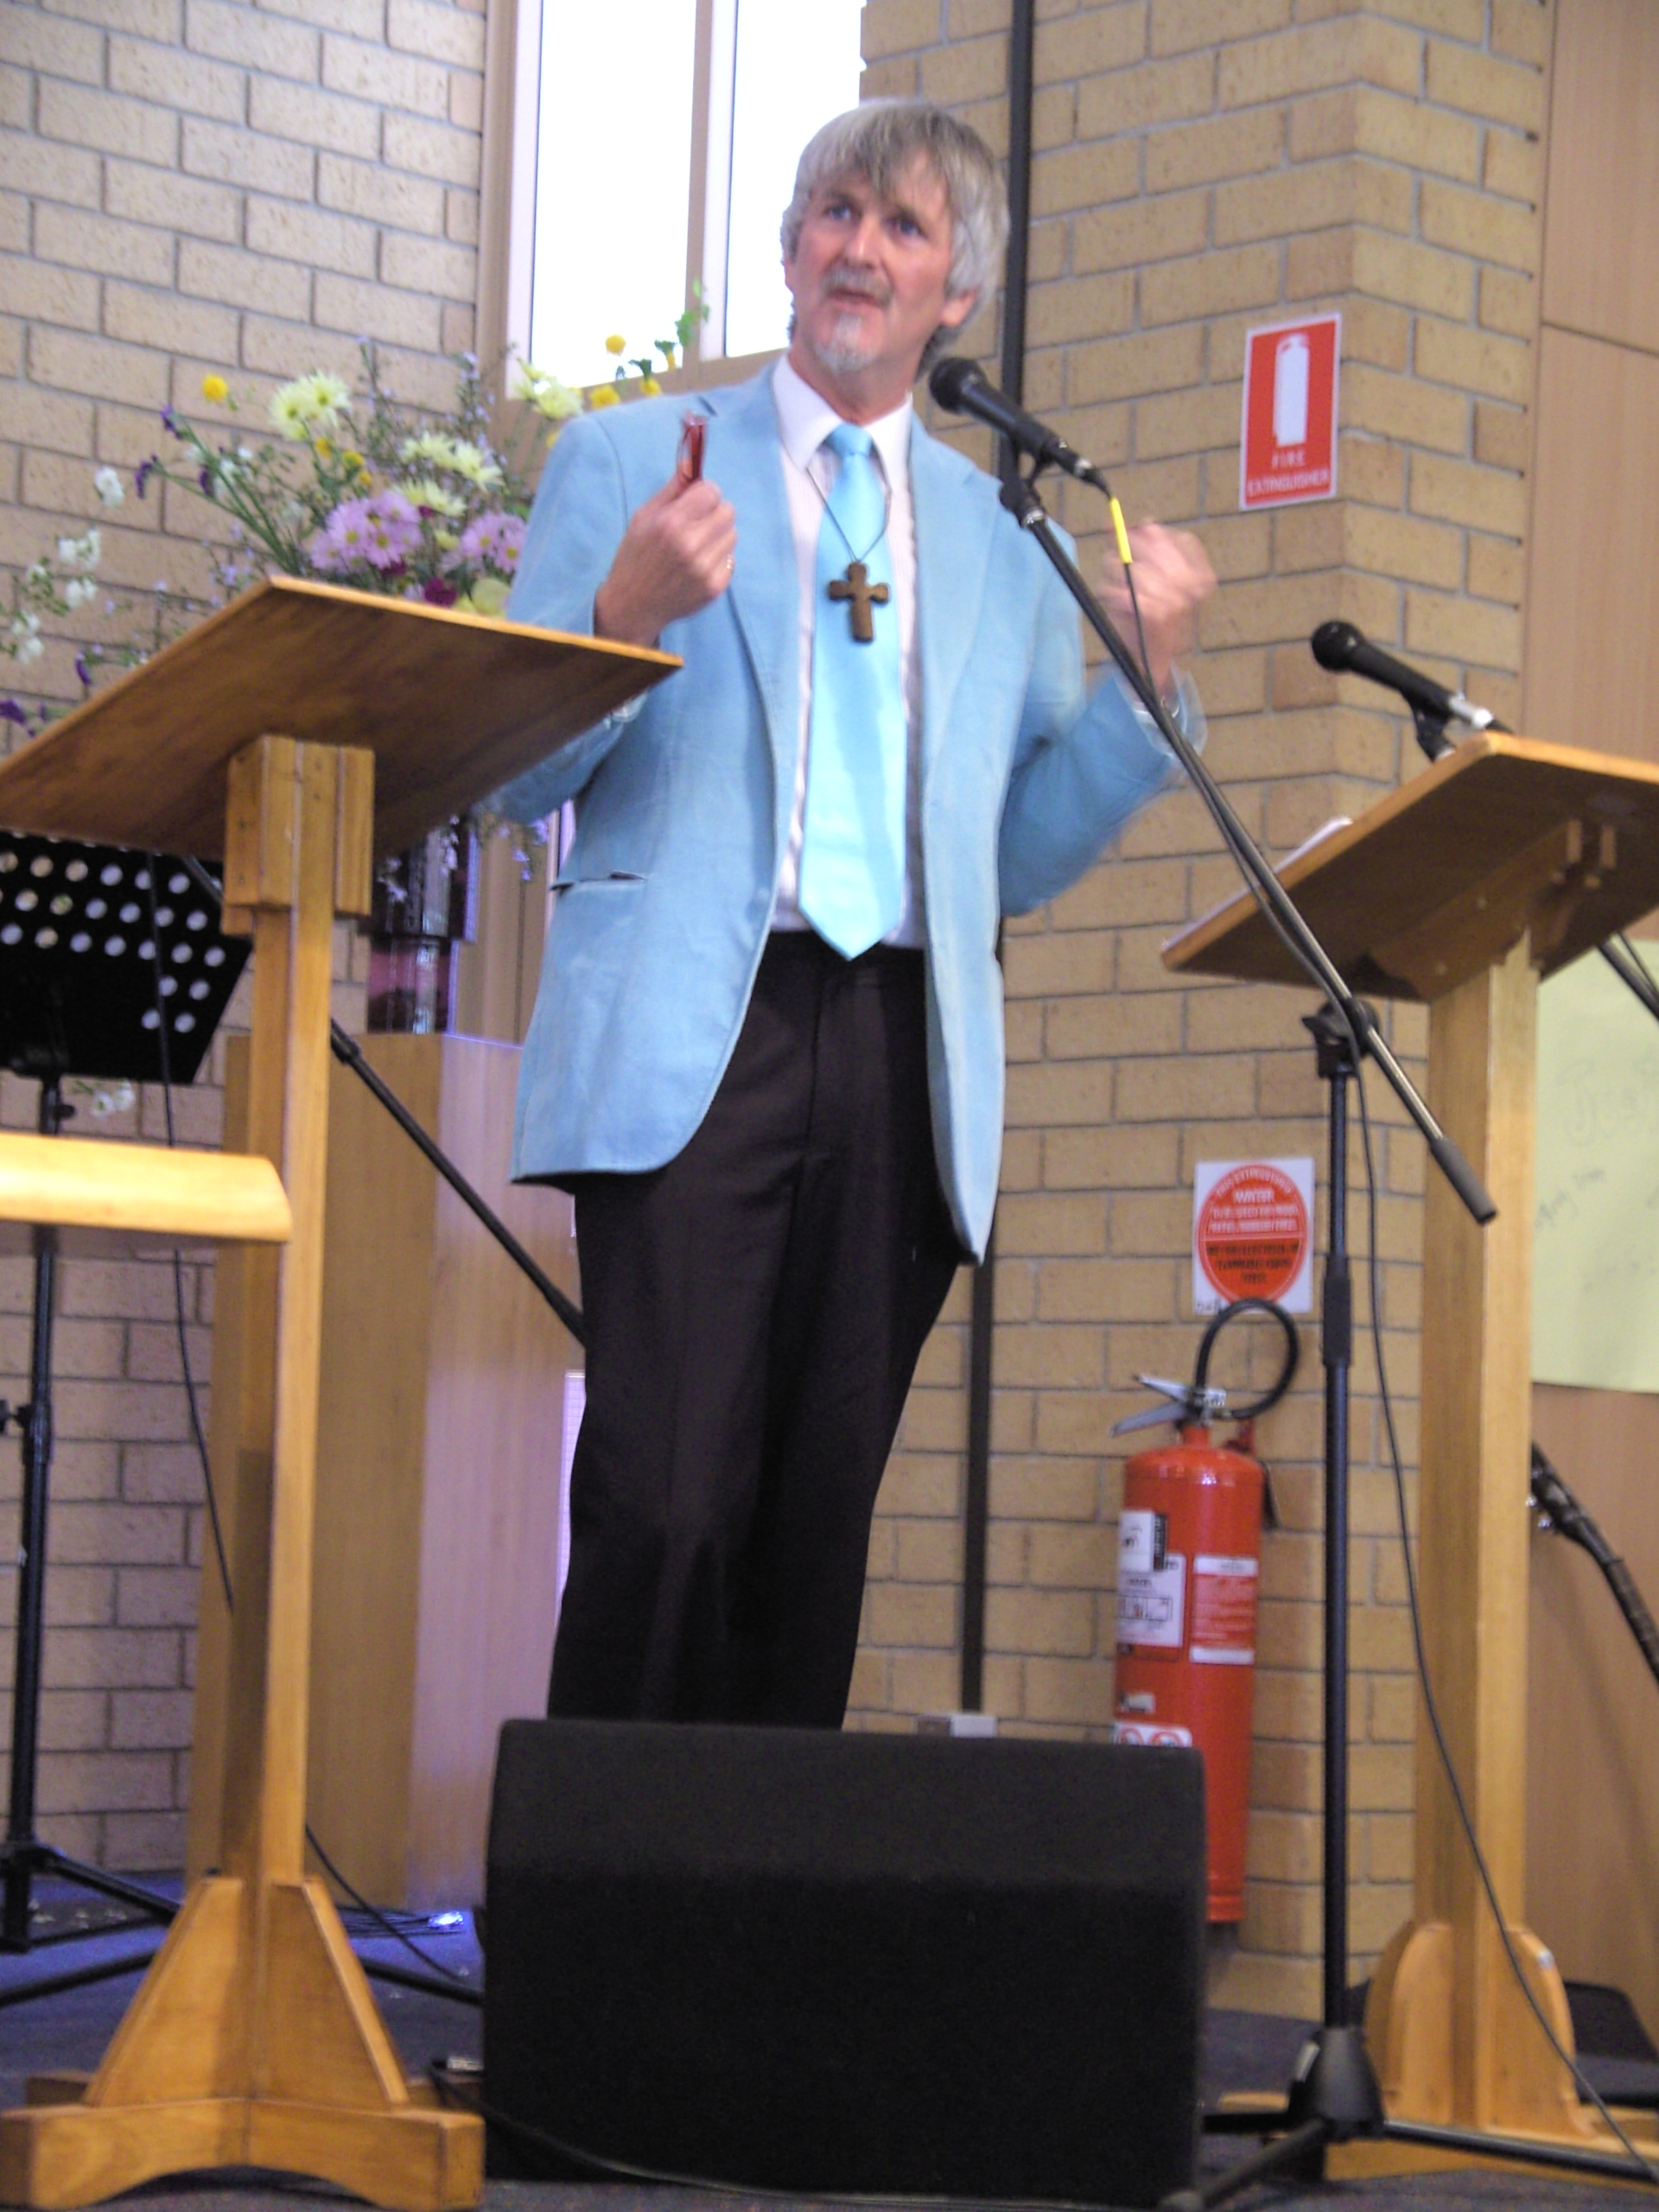 John L. Bell in 2009, Kippax Uniting Church, Canberra, Australië